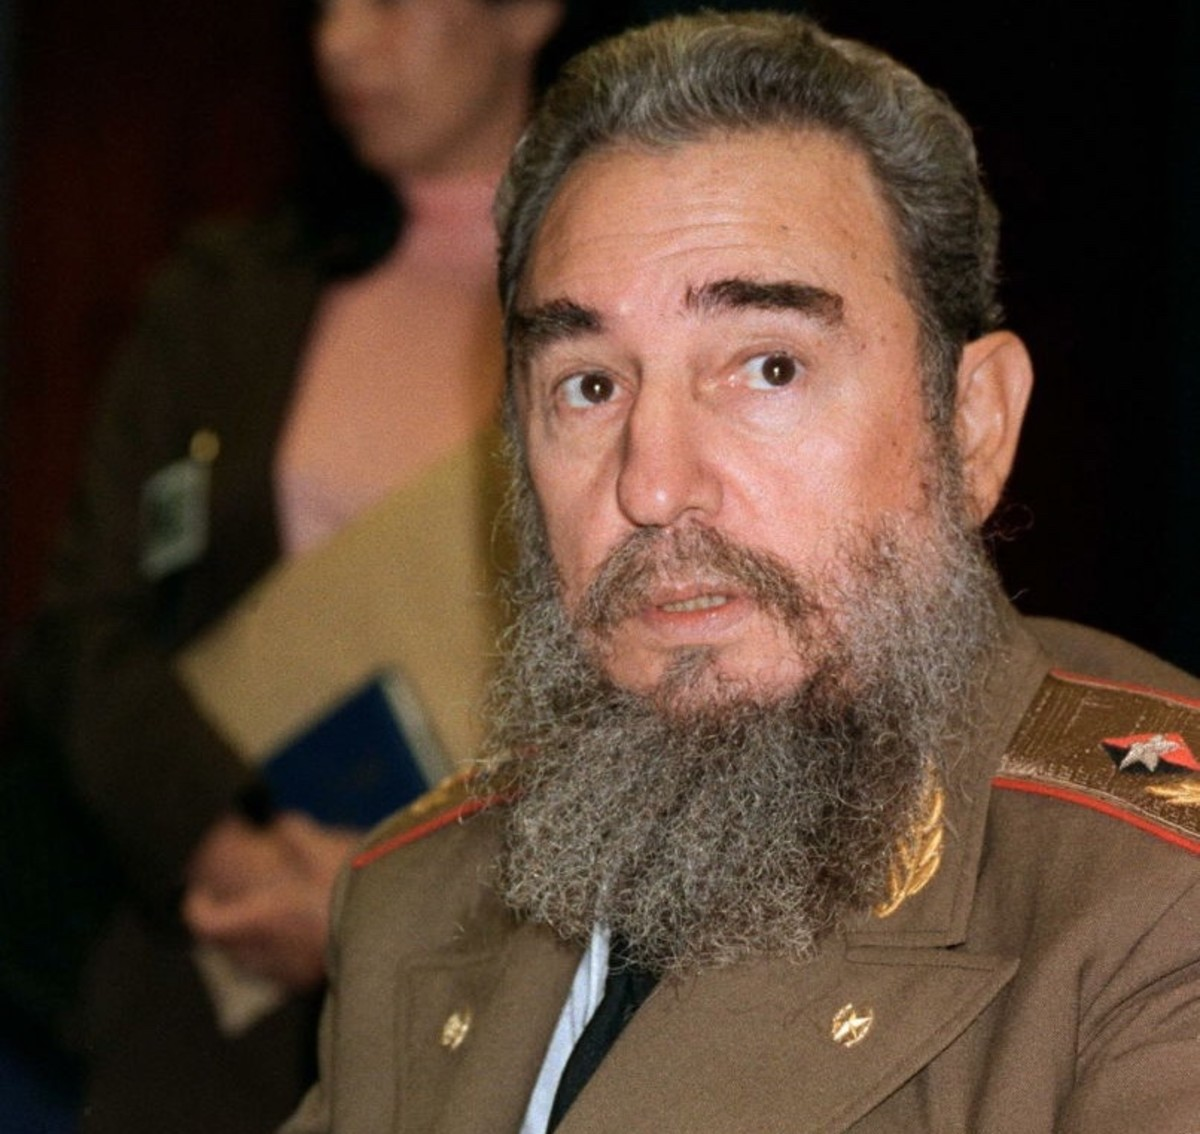 fidel castro military leader president non u s com fidel castro in 1986 photo dominique faget afp getty images